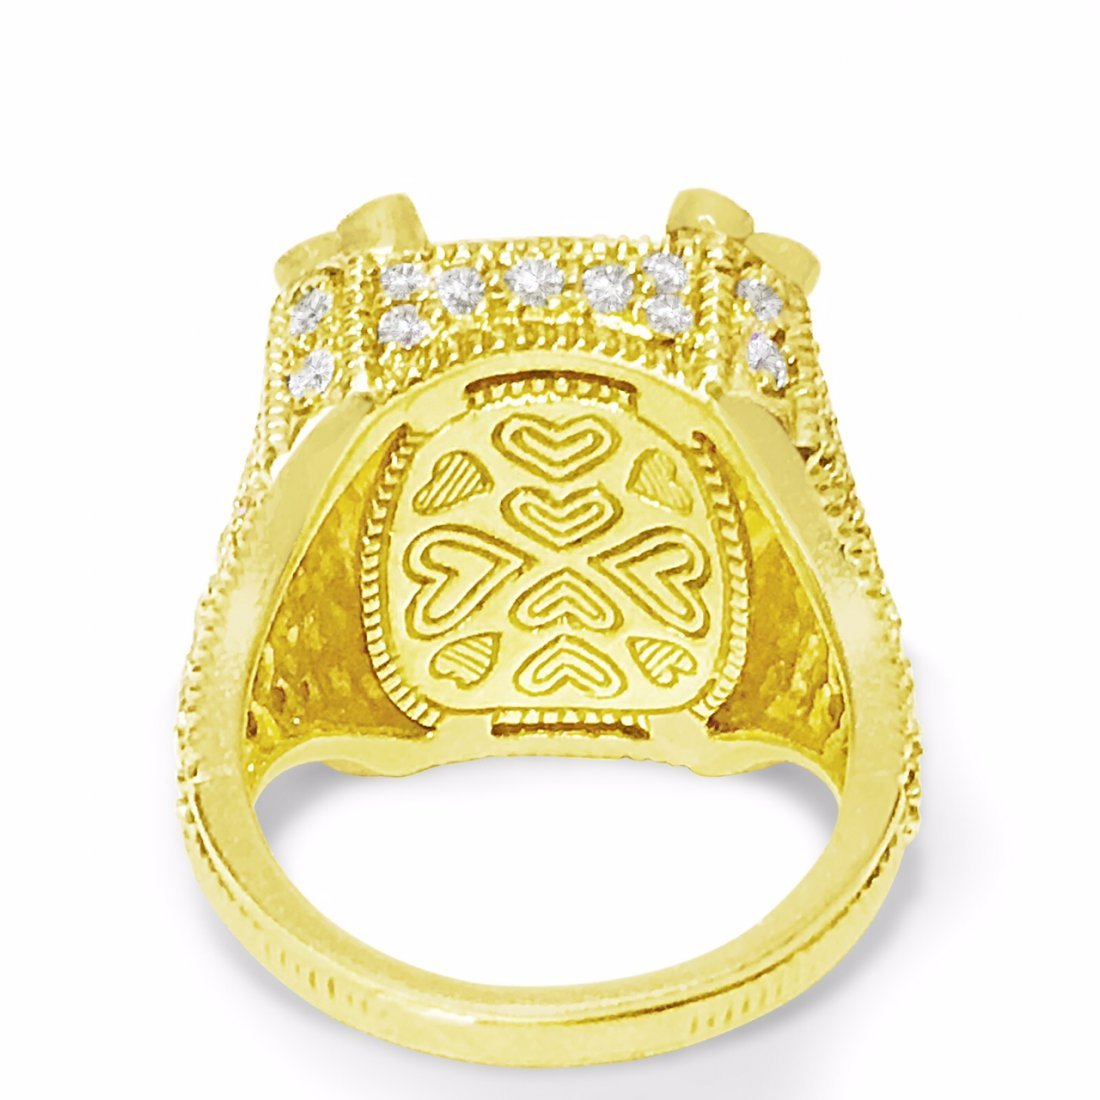 18K Gold, 25 CT Natural Yellow Stone and Diamond Ring - 4